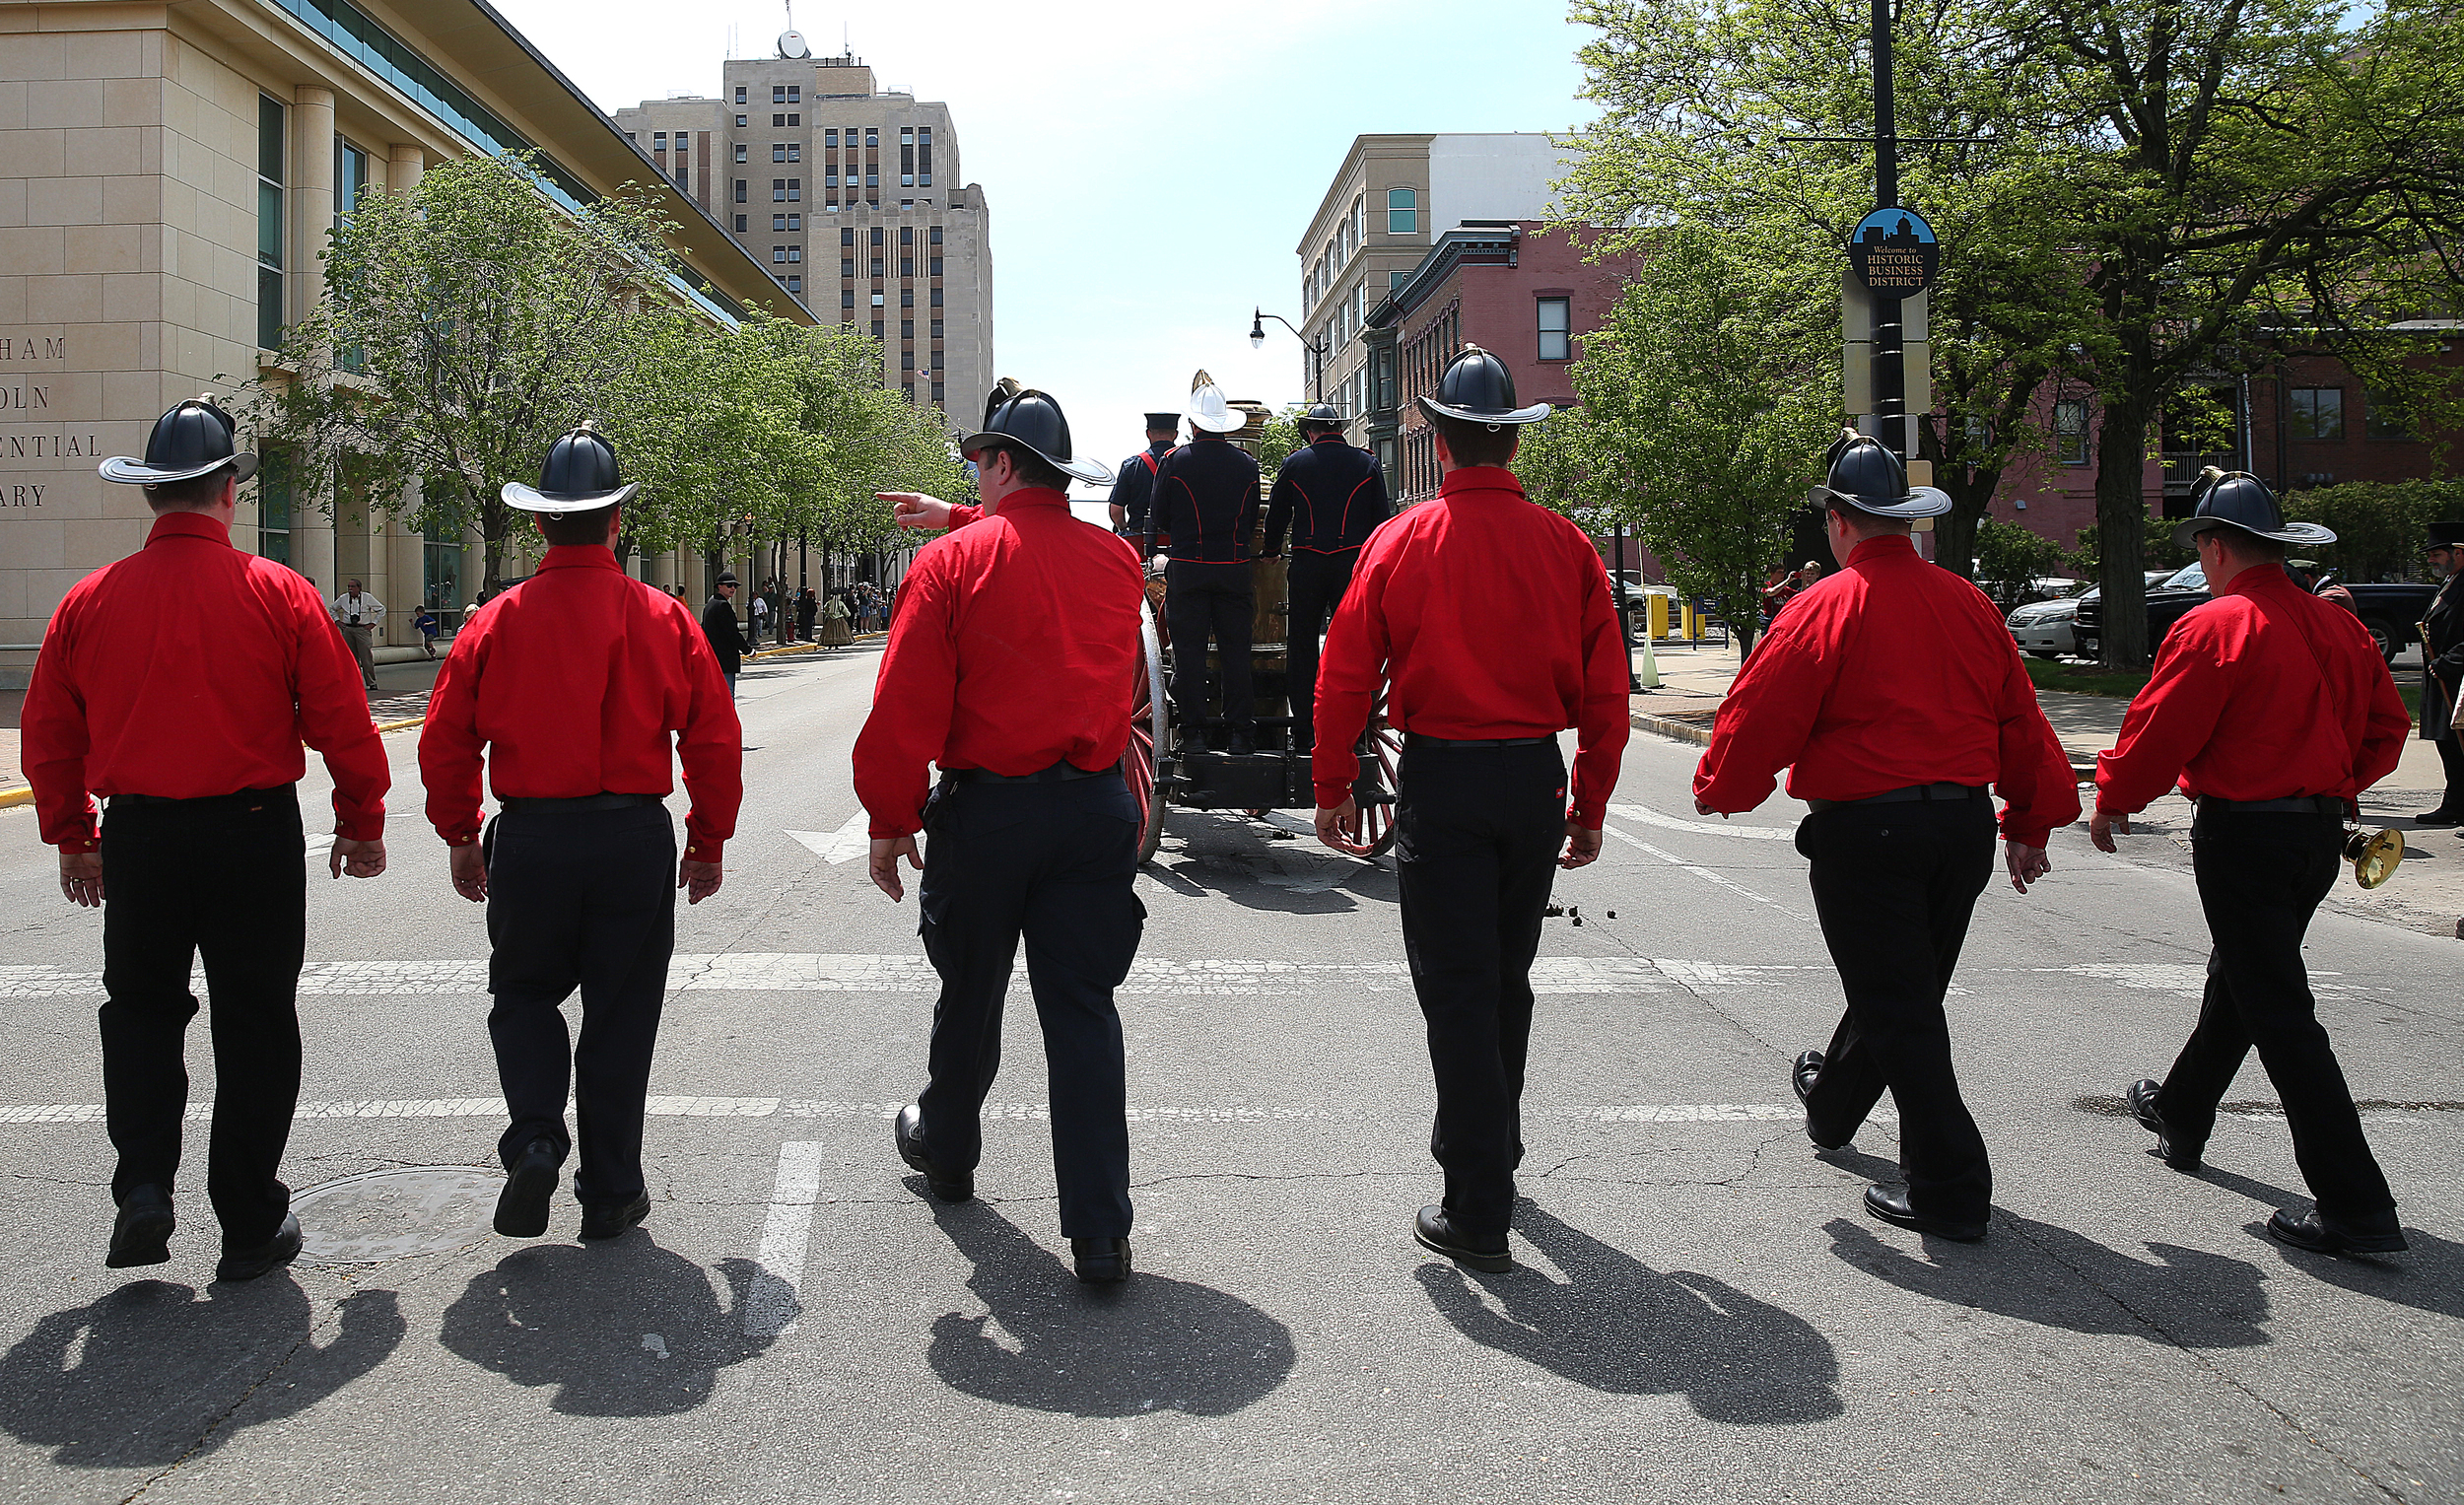 Active duty Springfield firefightersand one retiree,dressed in period red shirts, walk together in thefuneral procession accompanying avintage 1891 fire engine pumper.David Spencer/The State Journal-Register